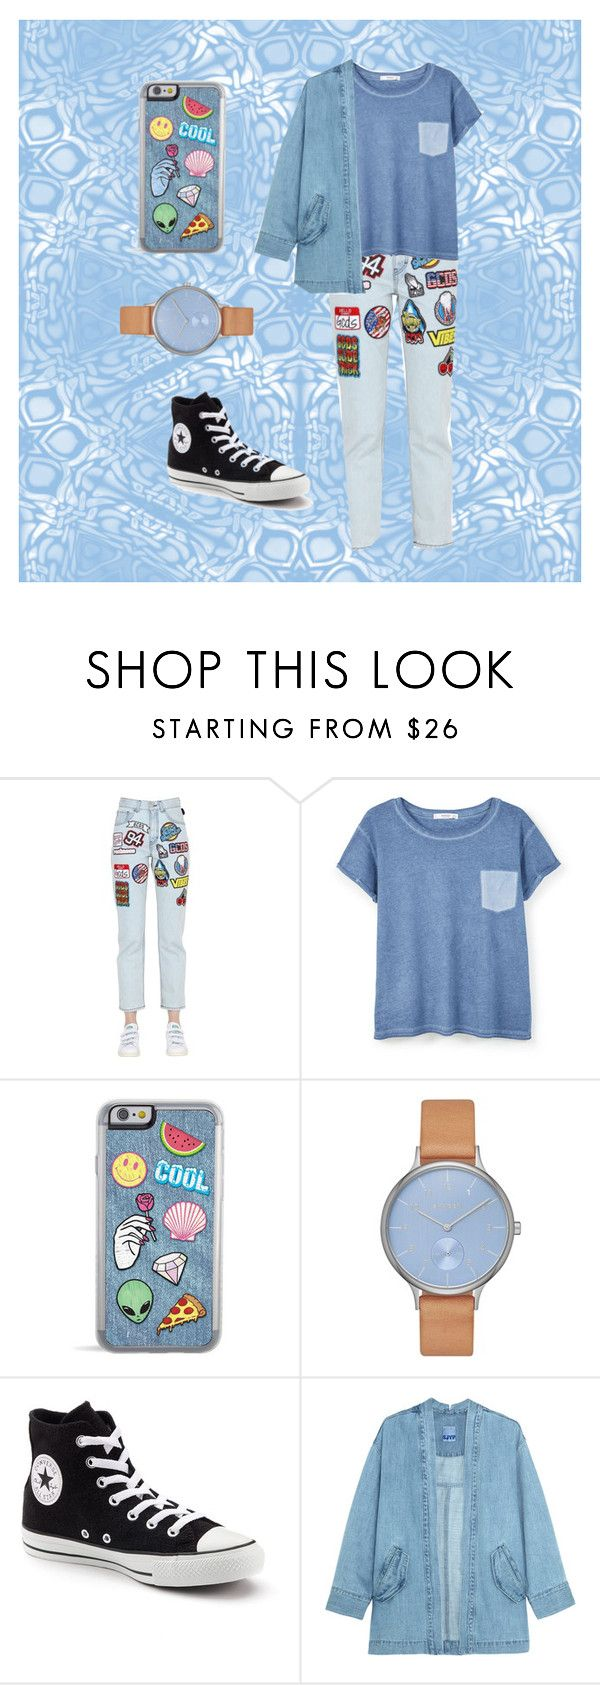 """""""colorful"""" by yasmin-lek on Polyvore featuring GCDS, MANGO, Skagen, Converse, Steve J & Yoni P, StreetStyle and colorful"""